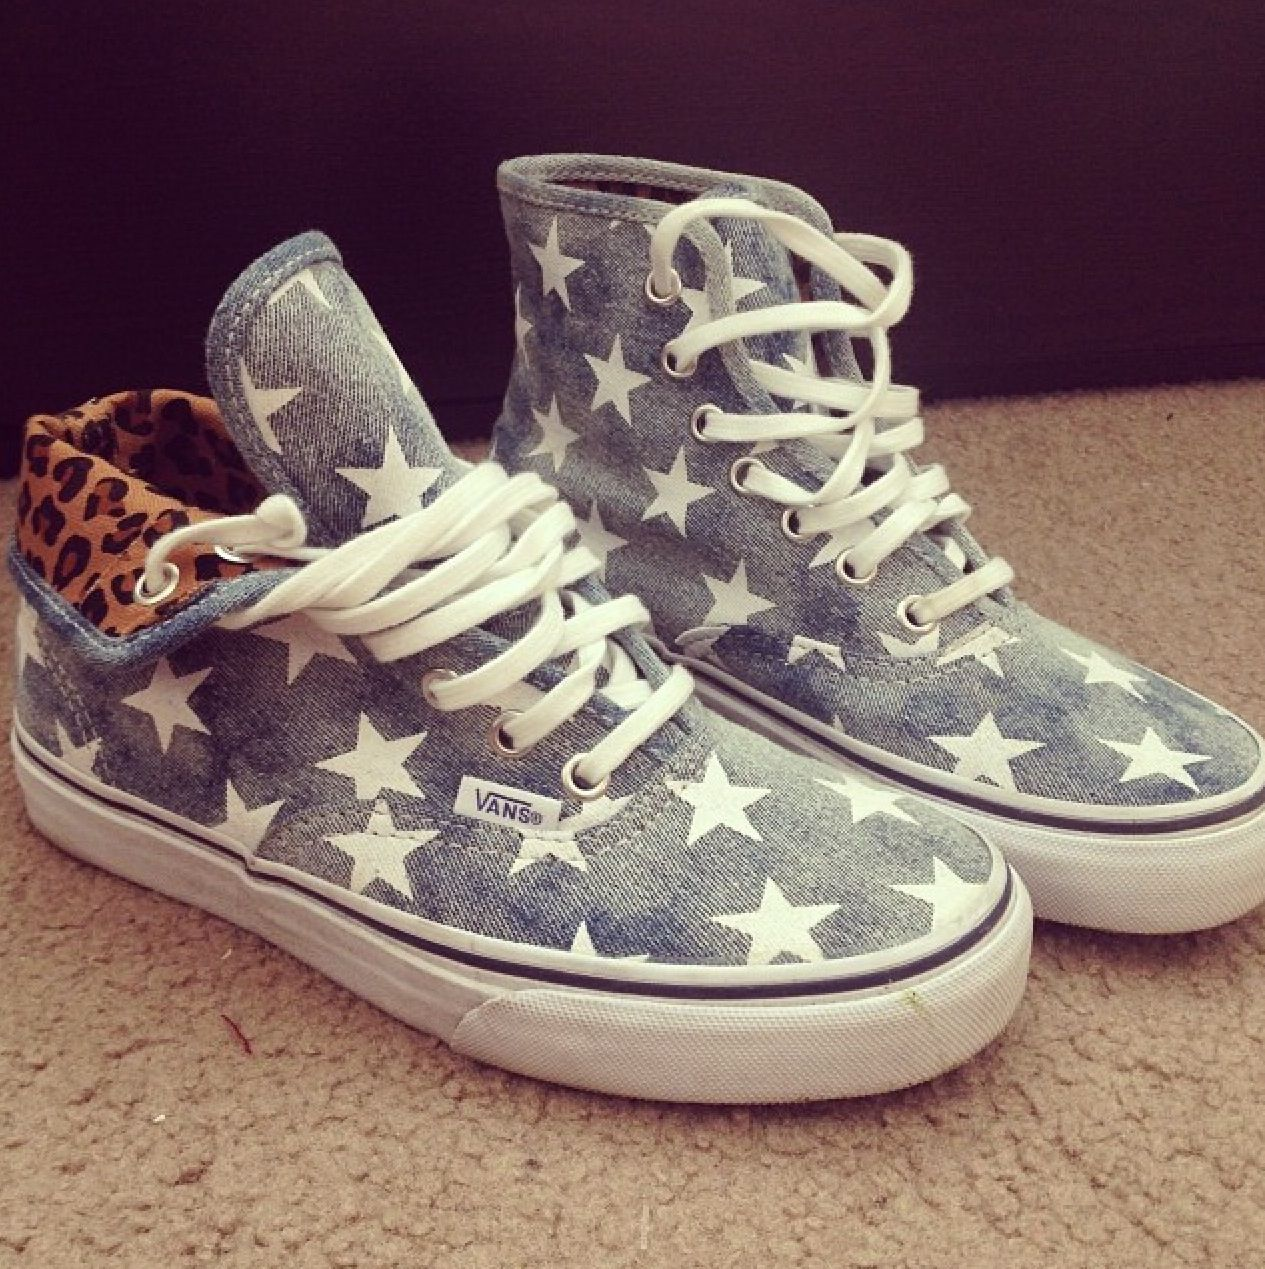 Glass High Top Shoes